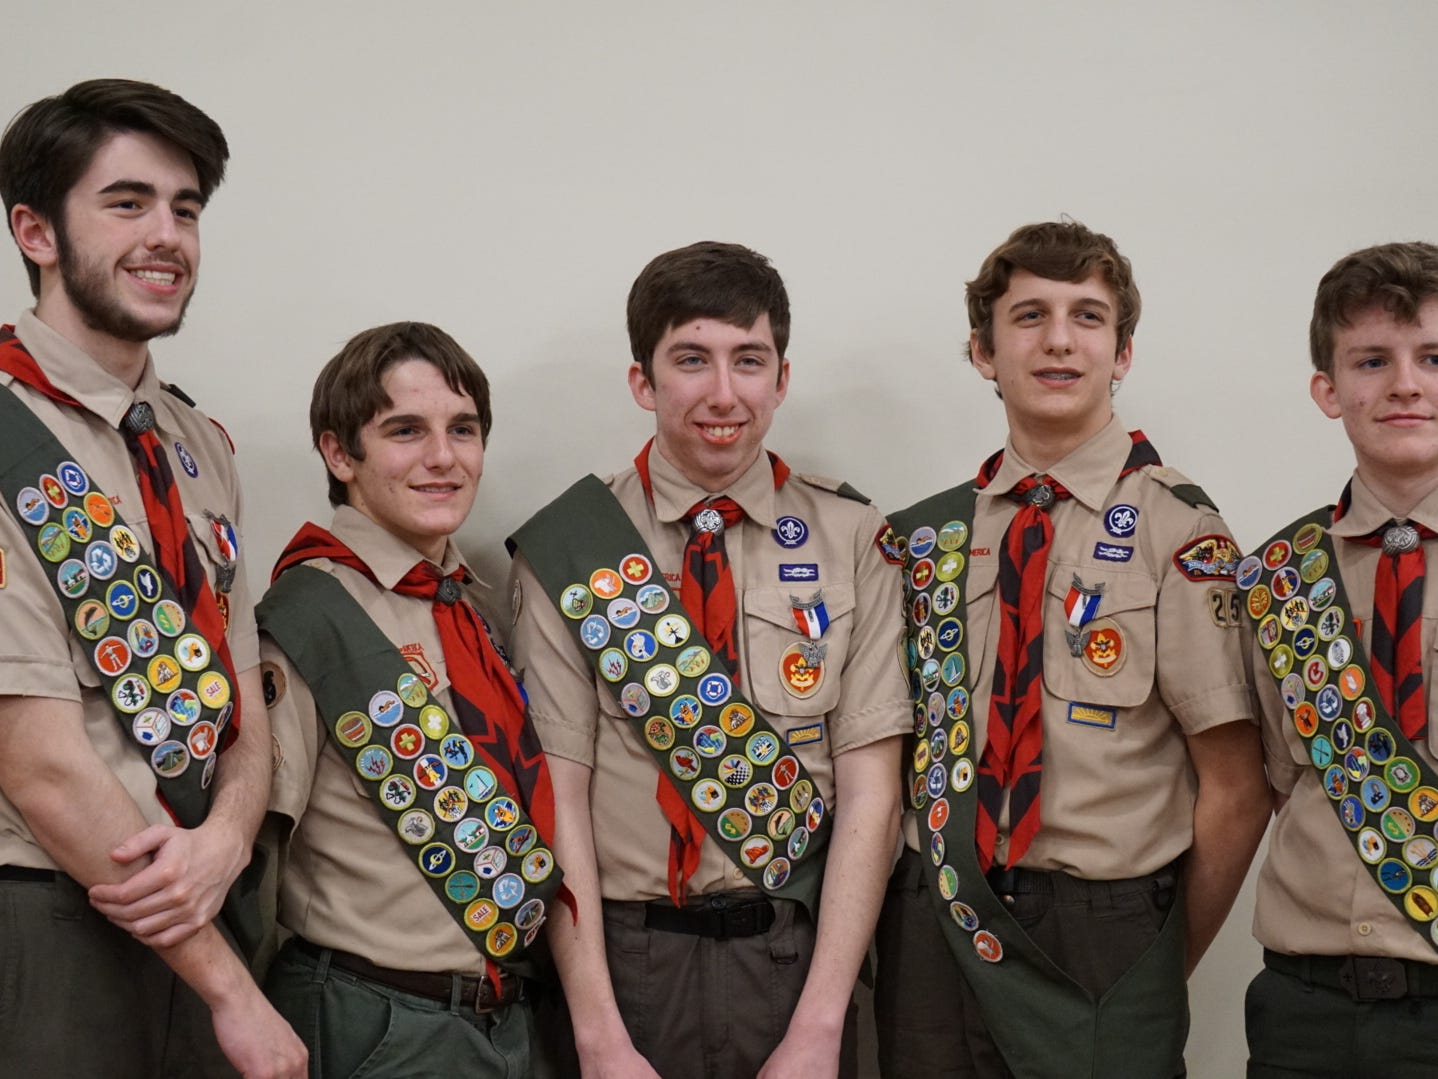 Five Scouts from local Troops have earned the highest award in Scouts BSA Ð the Eagle Scout Award. Wesley Bonner, Gavin Bonner, Matthew Johnson, Ben Patterson, from Troop 25 in East York, and AJ Kalligonis from Troop 49 in Hellam all received their awards from Troop 25 Scoutmaster Perry Bevivino and Troop 49 Scoutmaster George Gayman during Troop 25Õs Court of Honor held on Tuesday, February 25. submitted